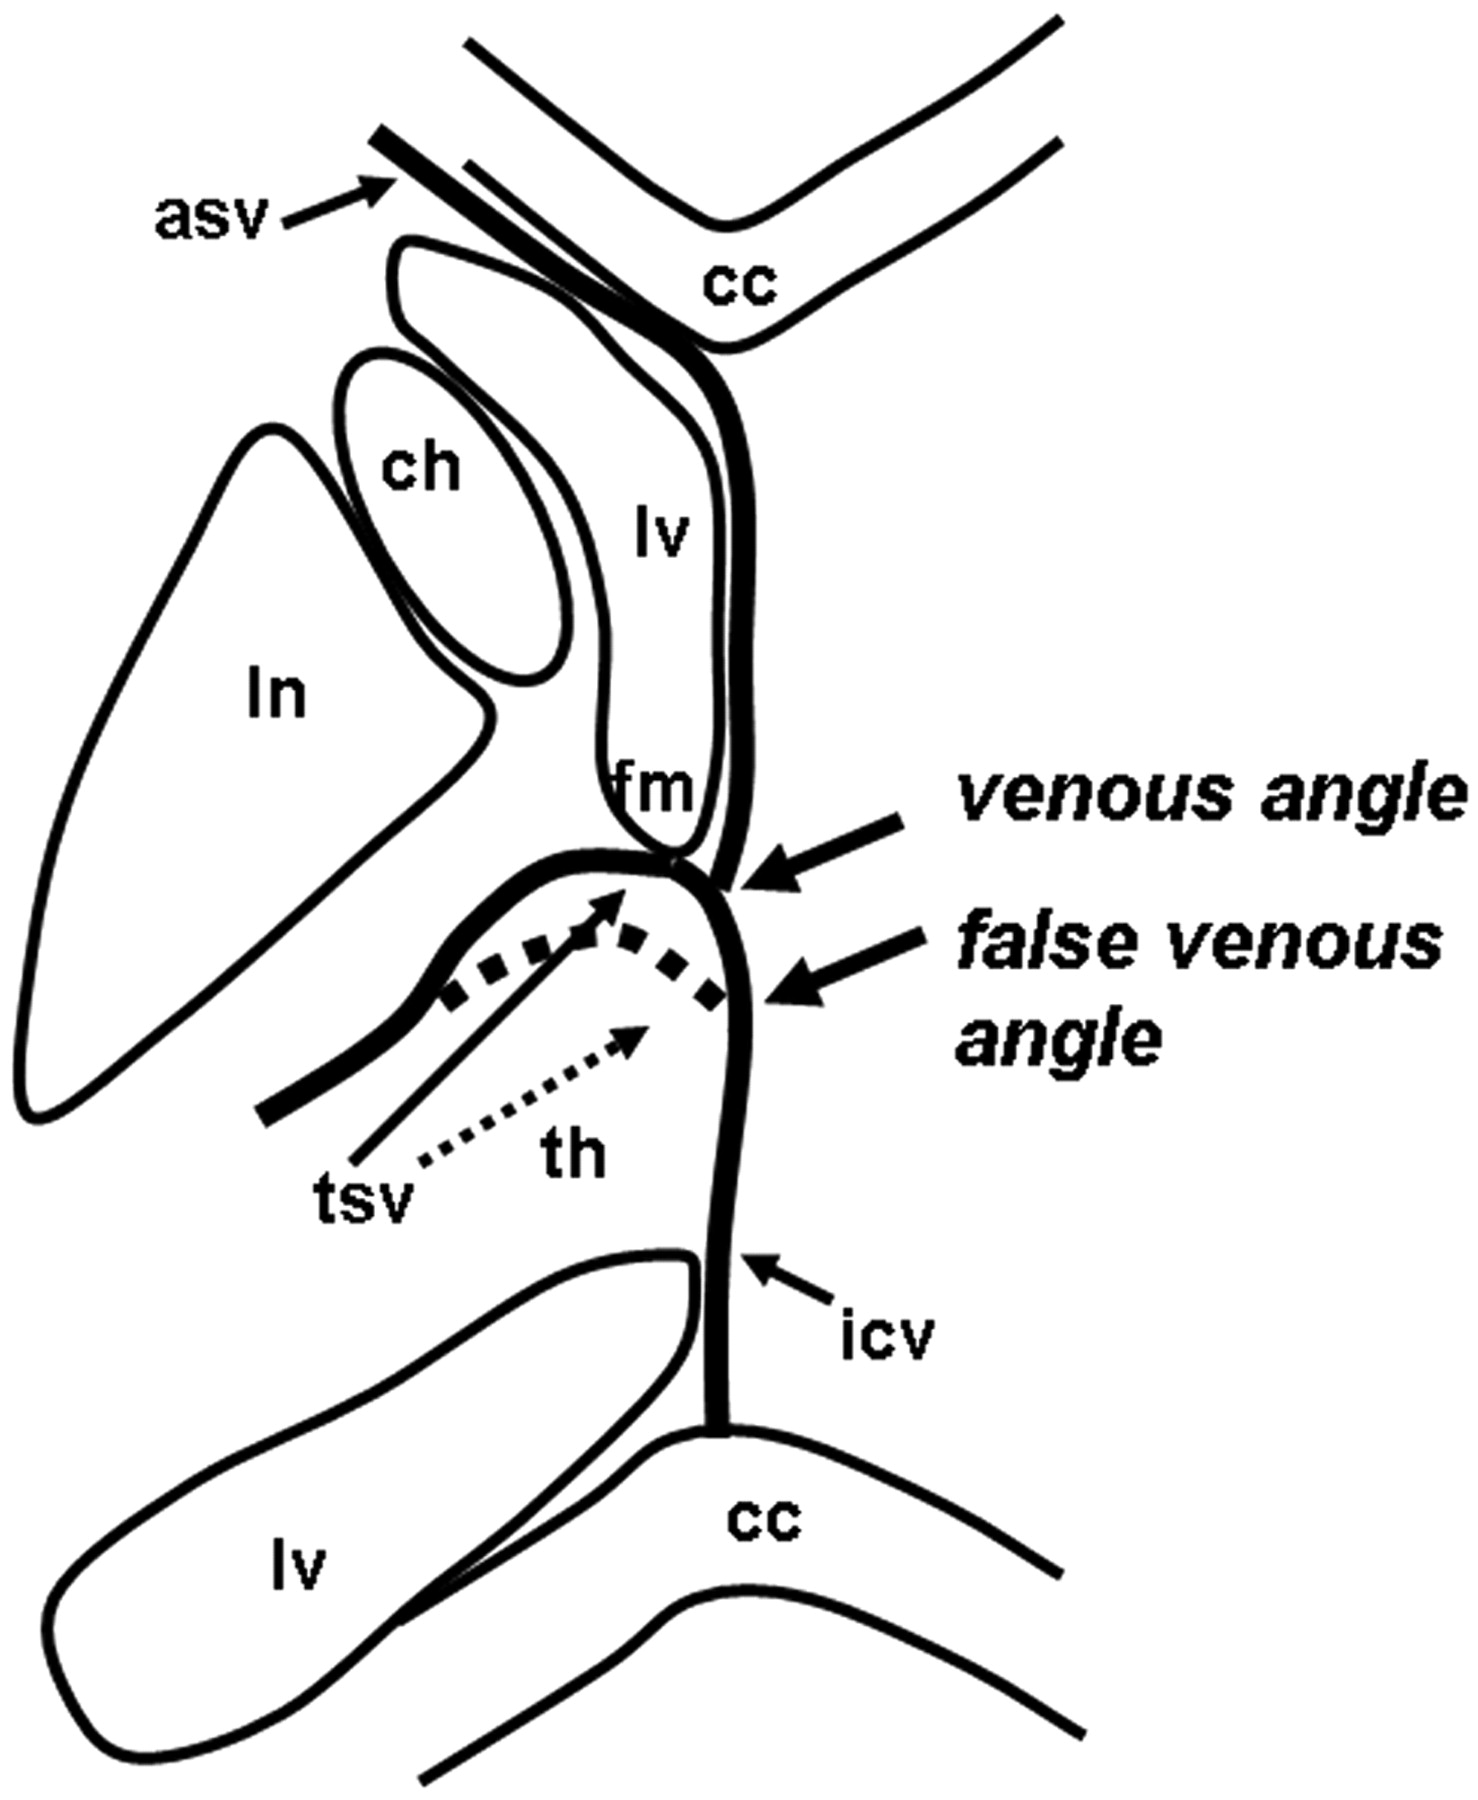 Demonstration Of Cerebral Venous Variations In The Region Of The